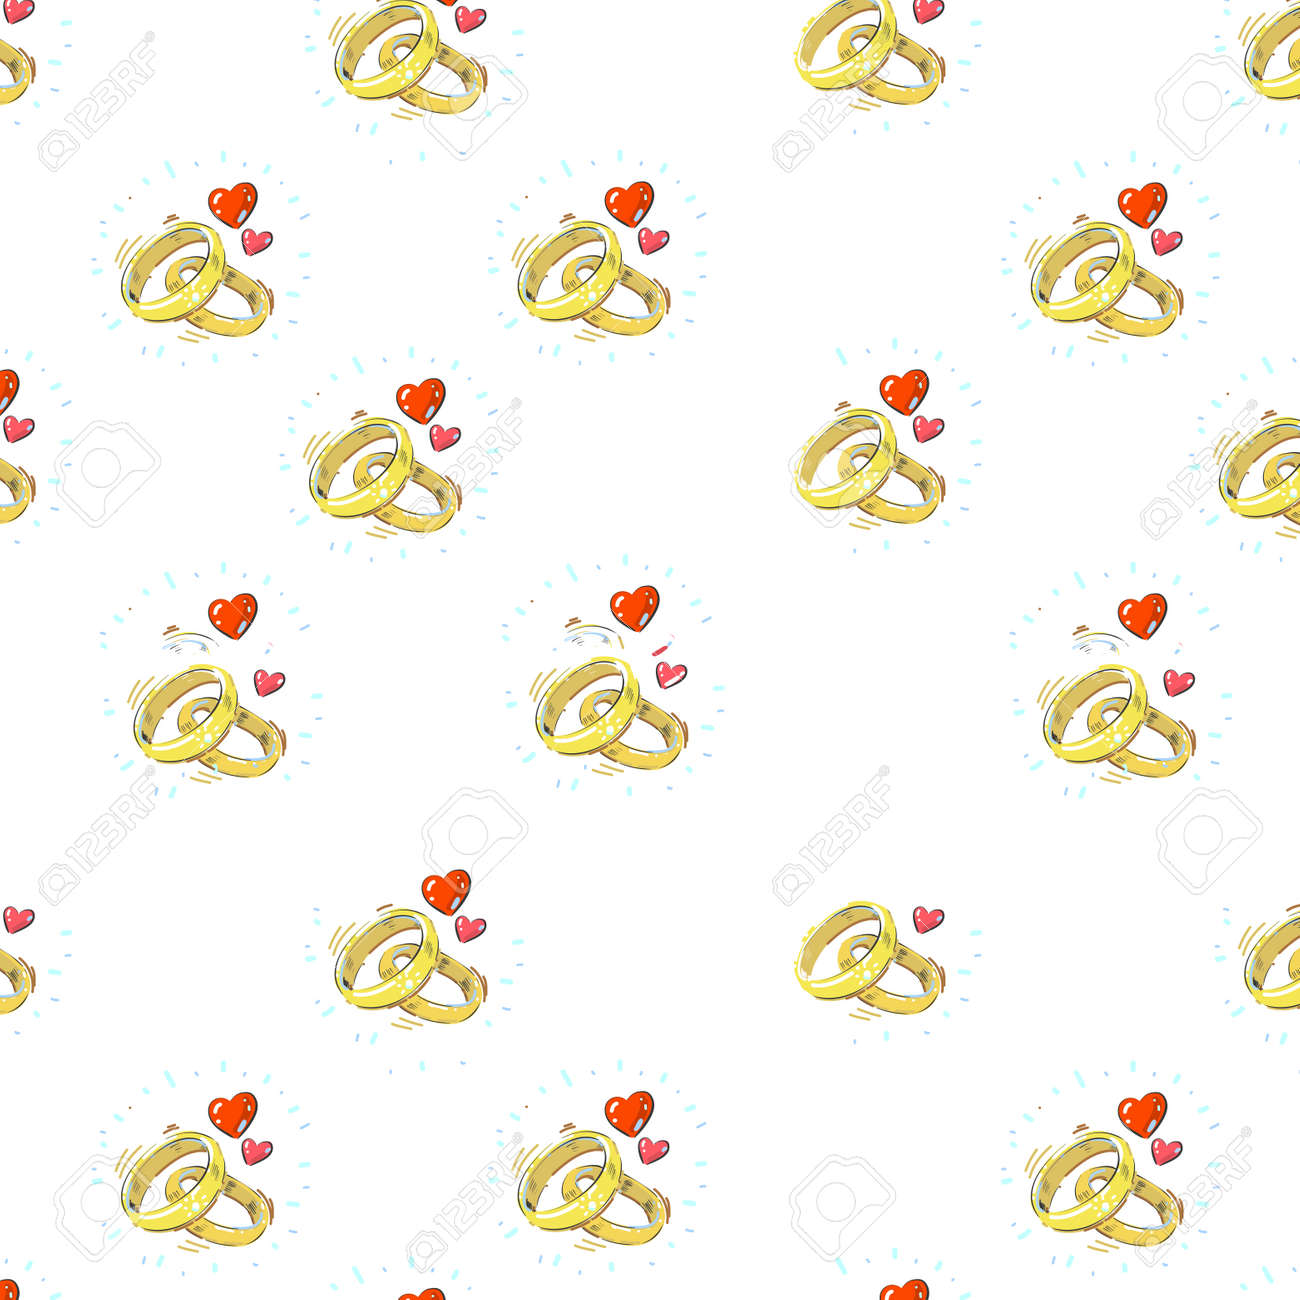 Hand drawn realistic engagement marriage rings with hearts seamless pattern on white background - 164944864